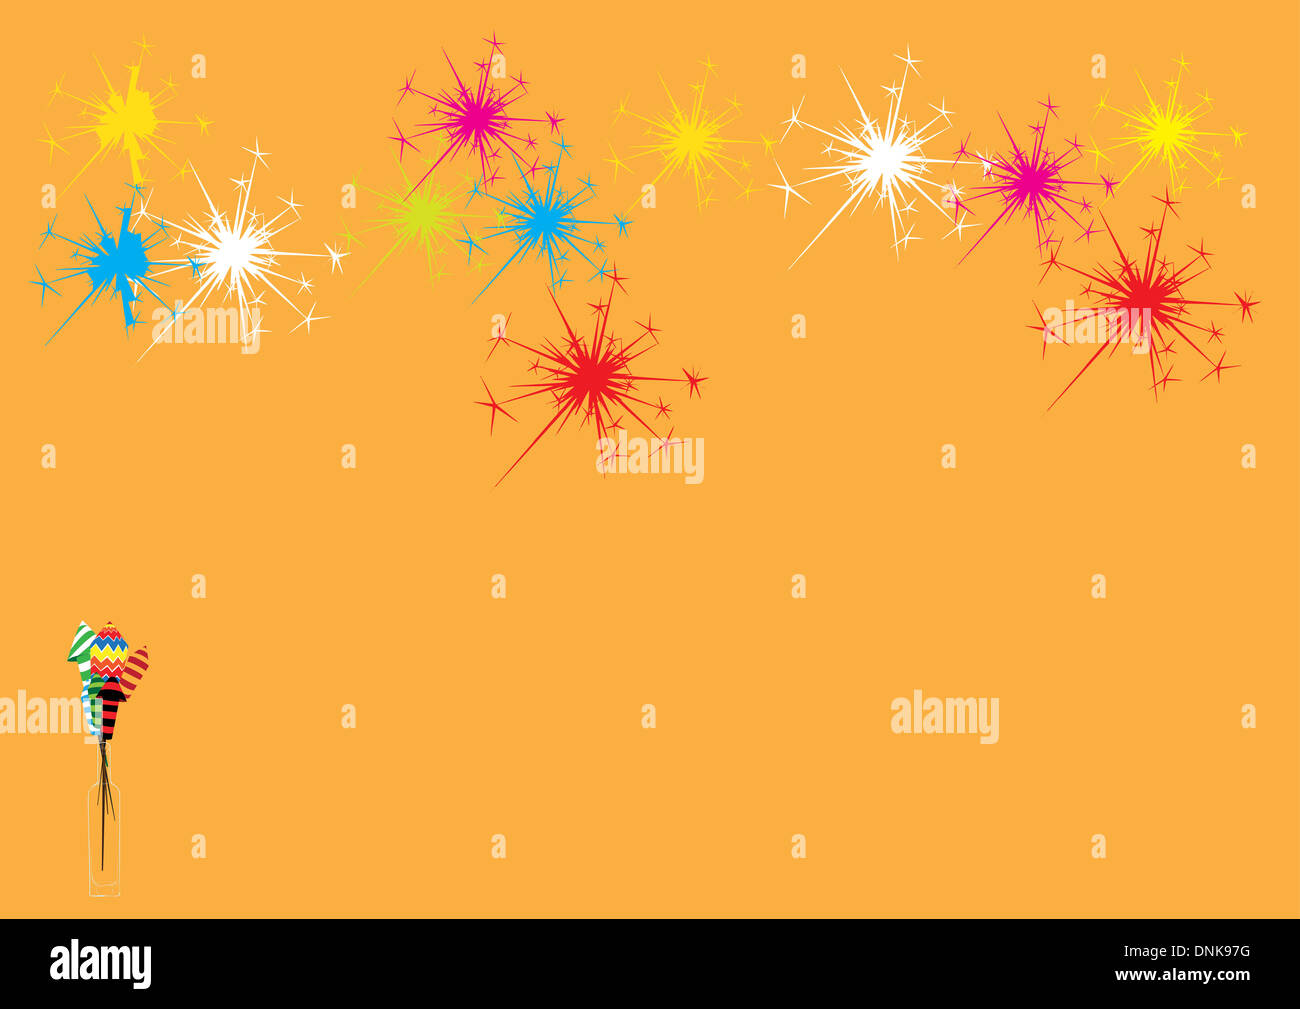 diwali fireworks isolated on orange background stock photo firecracker clipart jpg firecracker clip art picture